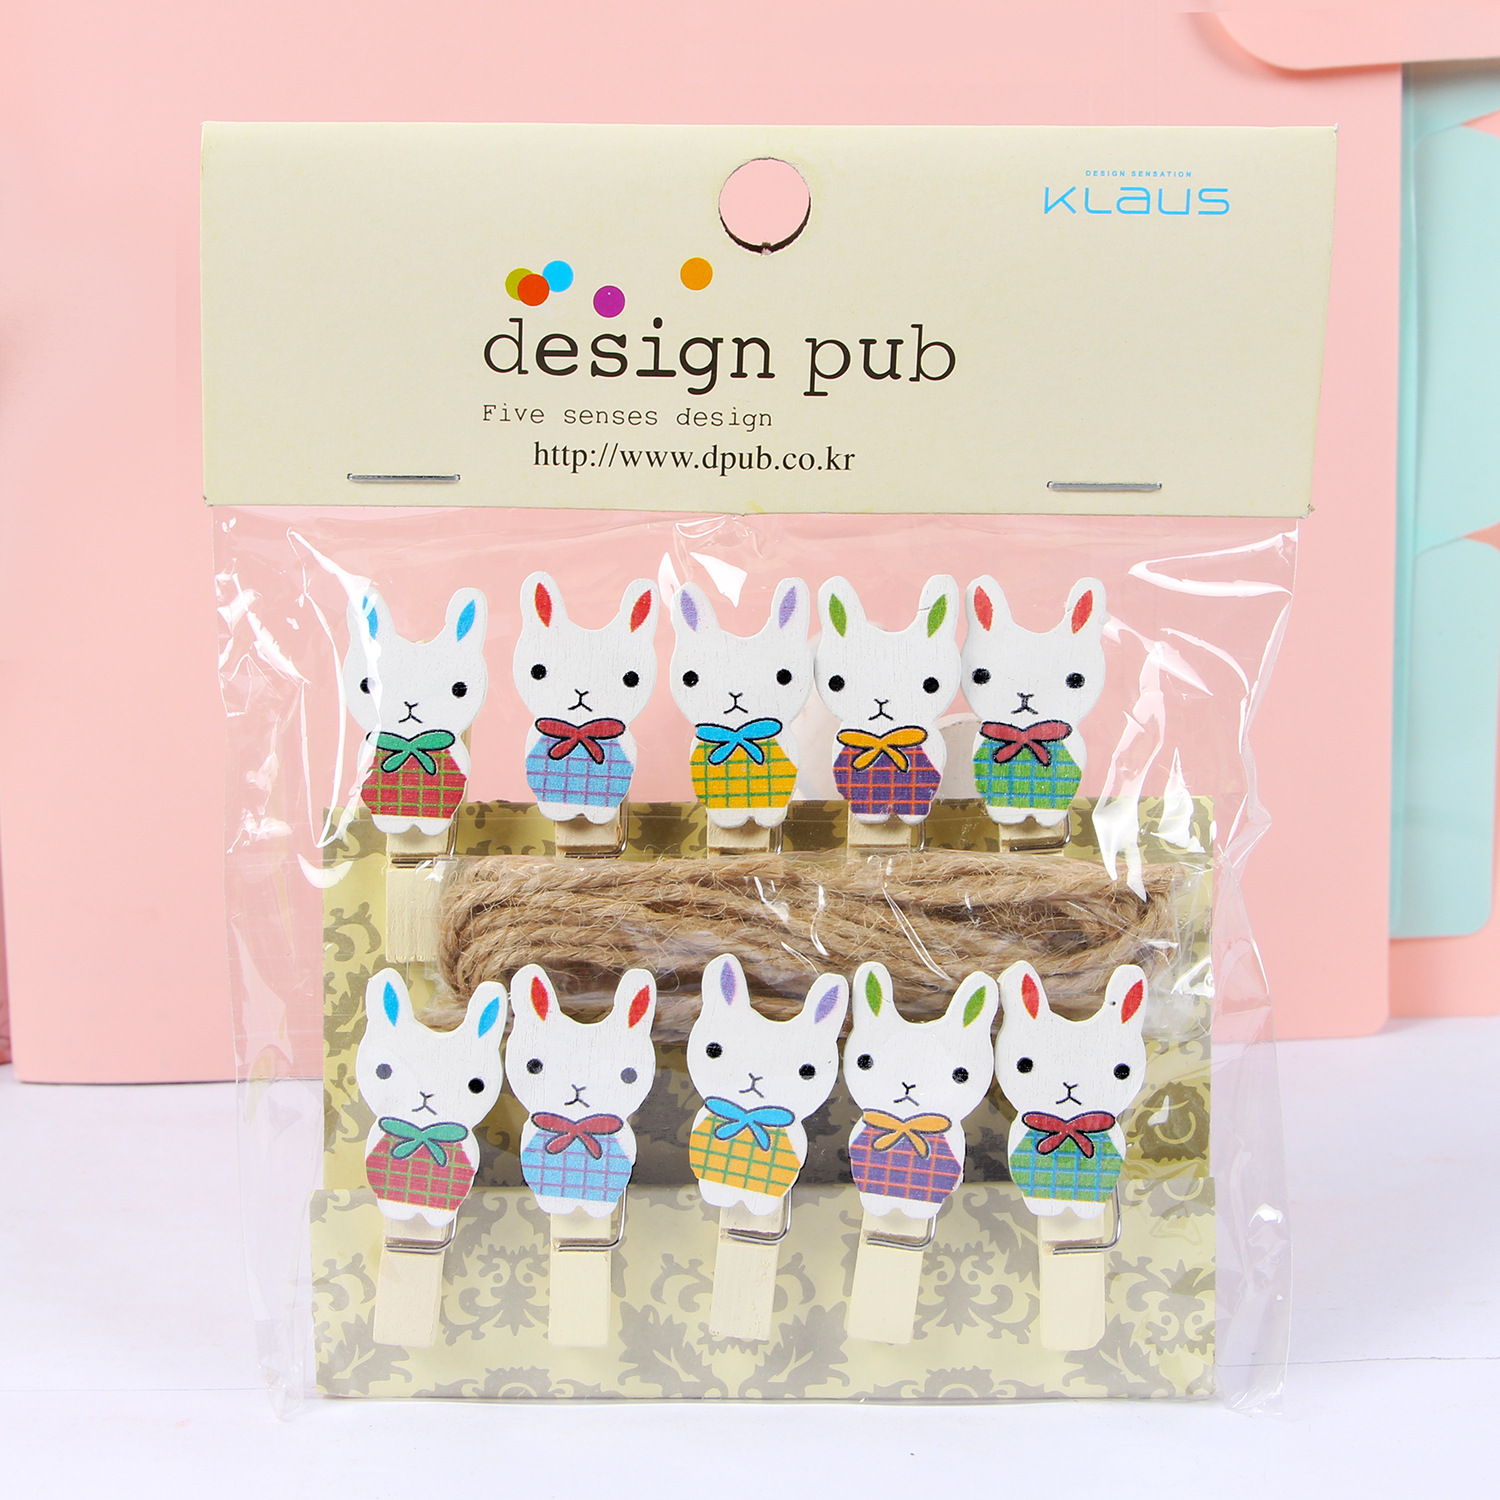 10 Pcs/ 1lot Cute Cartoon Rabbit Cat Plant Wood Clip Set / Cute Wooden Paper Clips / Small Craft Photo Pegs Kawaii Stationery